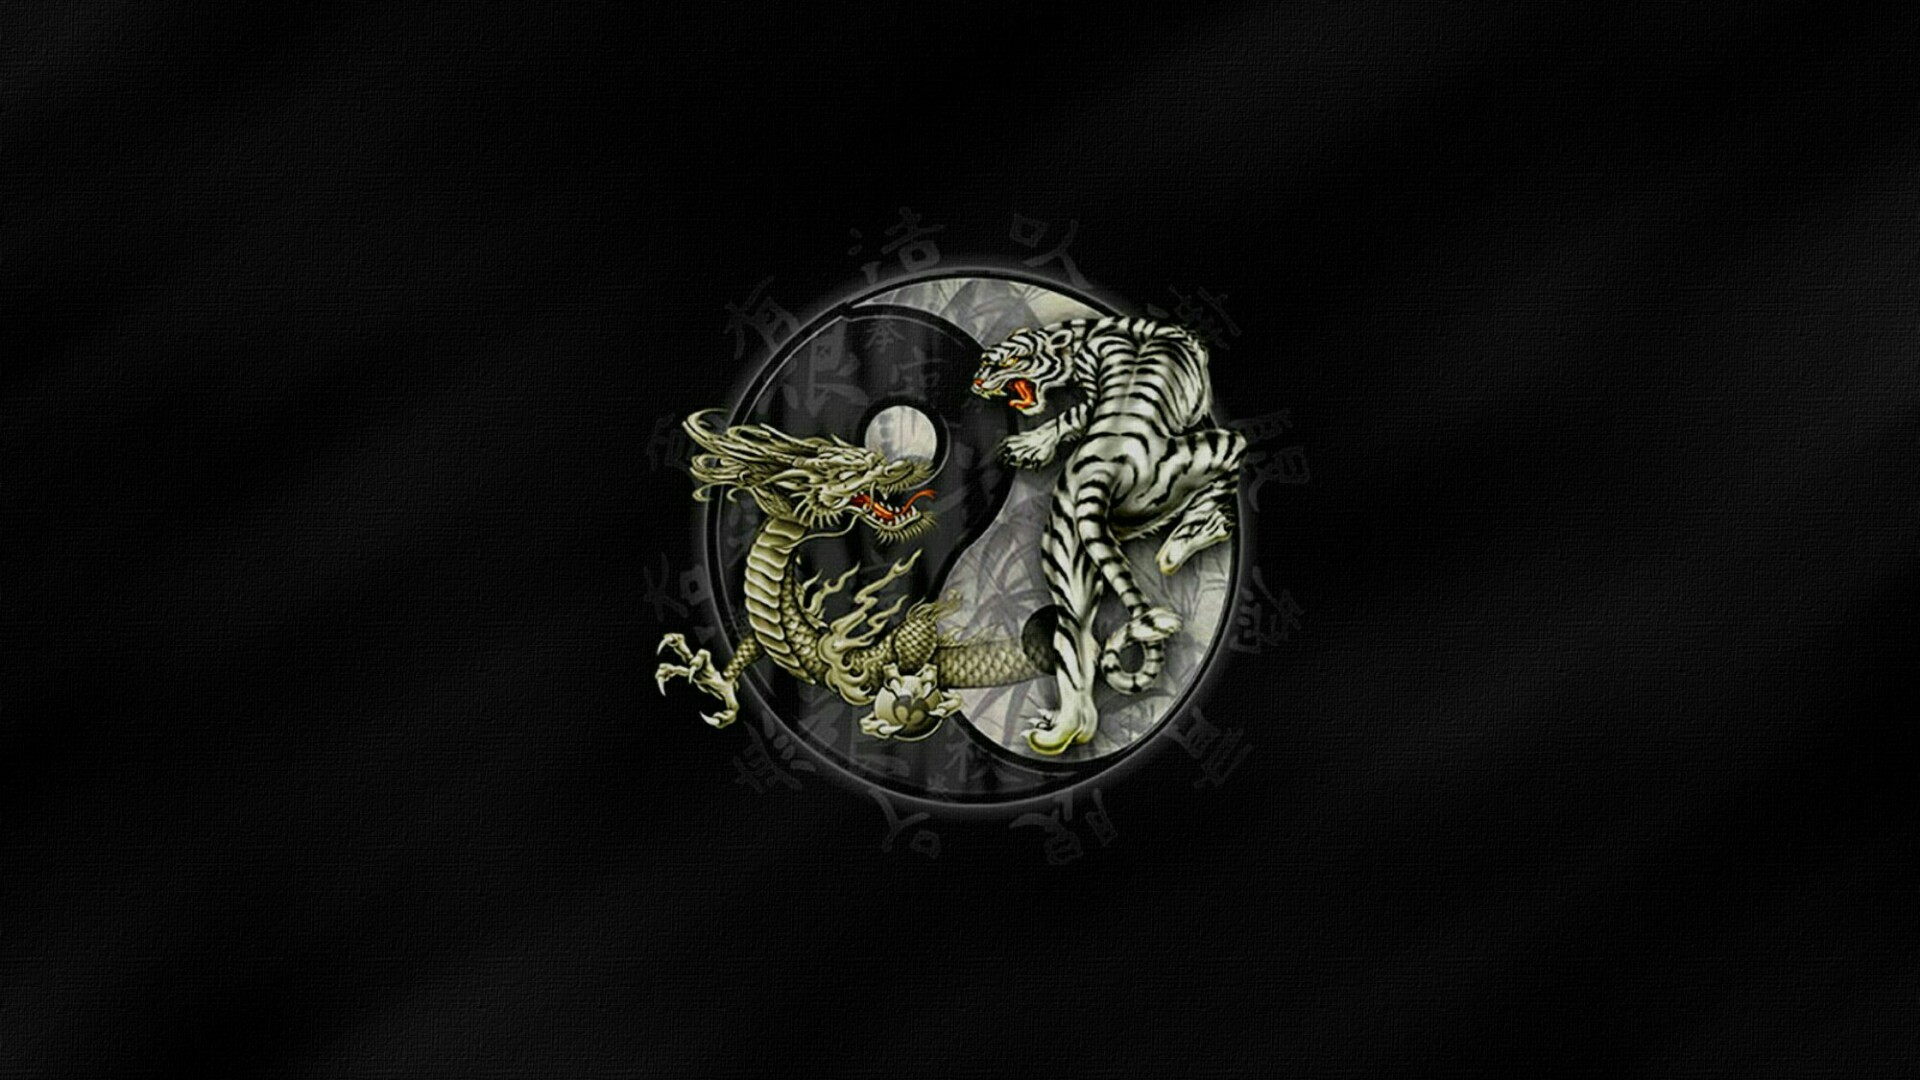 Res: 1920x1080, Tiger And Dragon Yin And Yang Wallpaper | Wallpaper Studio 10 | Tens of  thousands HD and UltraHD wallpapers for Android, Windows and Xbox